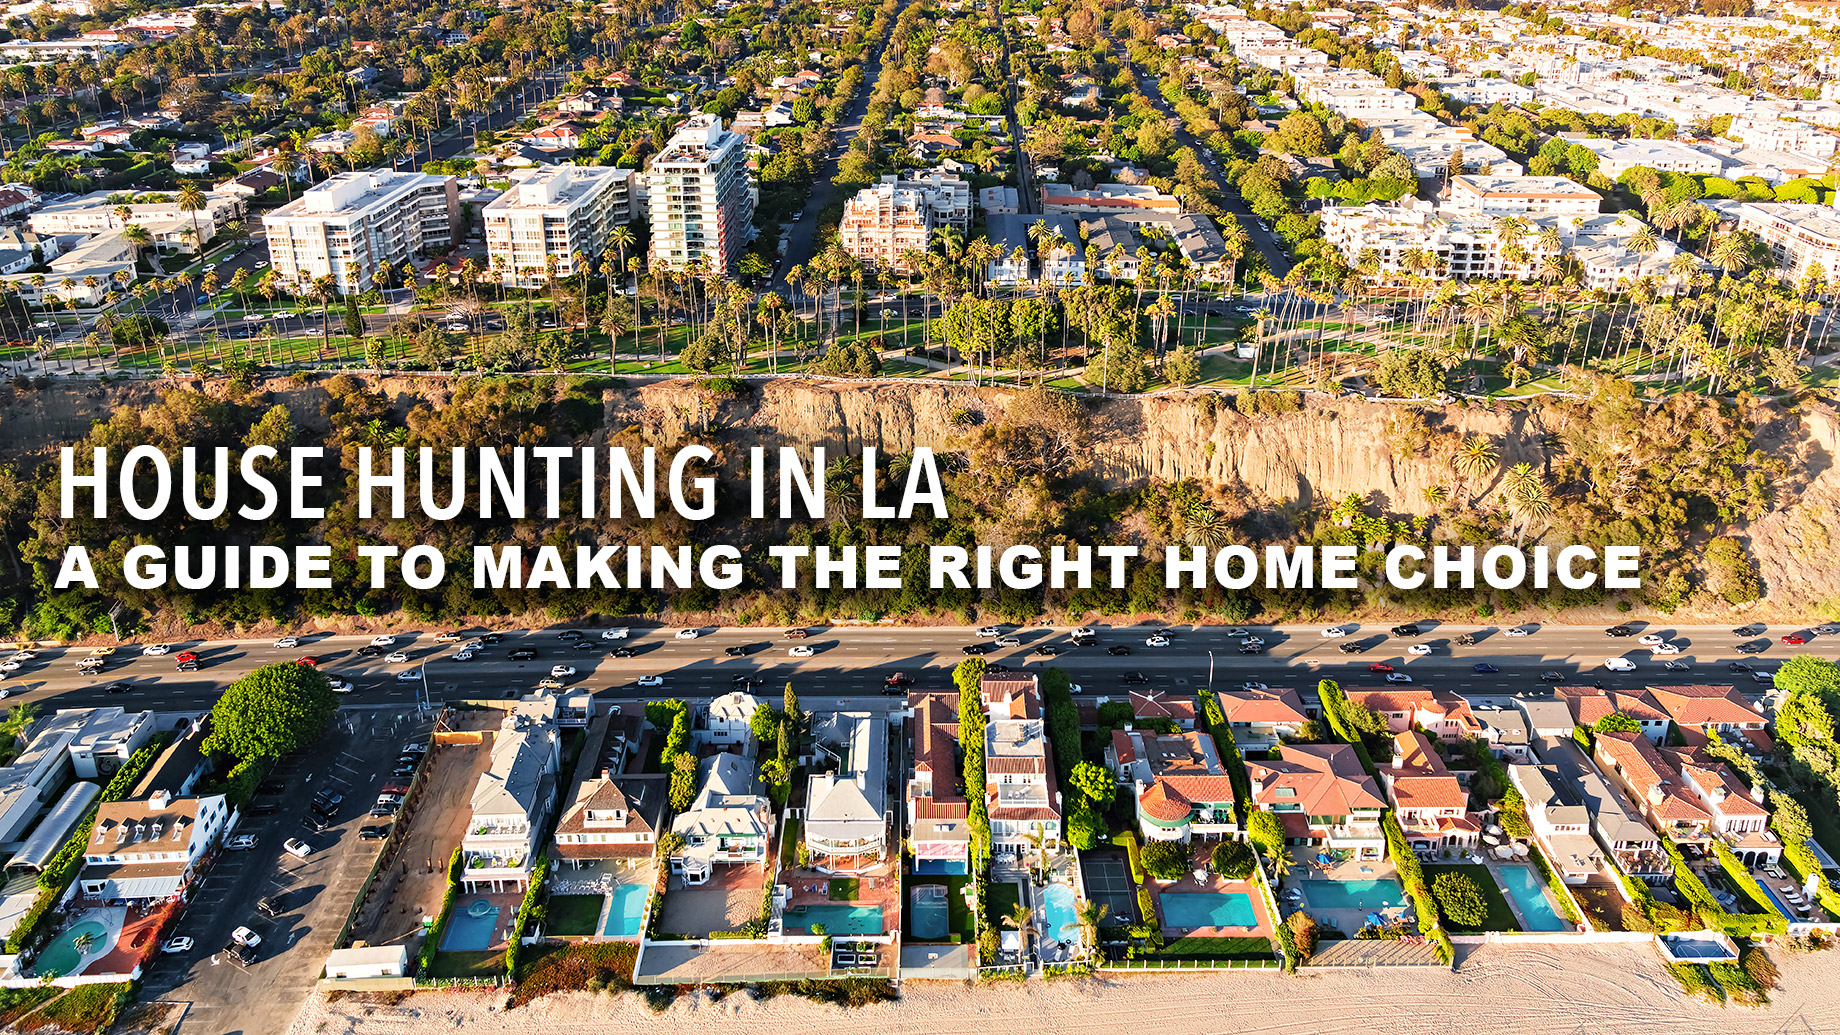 House Hunting In LA - A Guide To Making The Right Home Choice